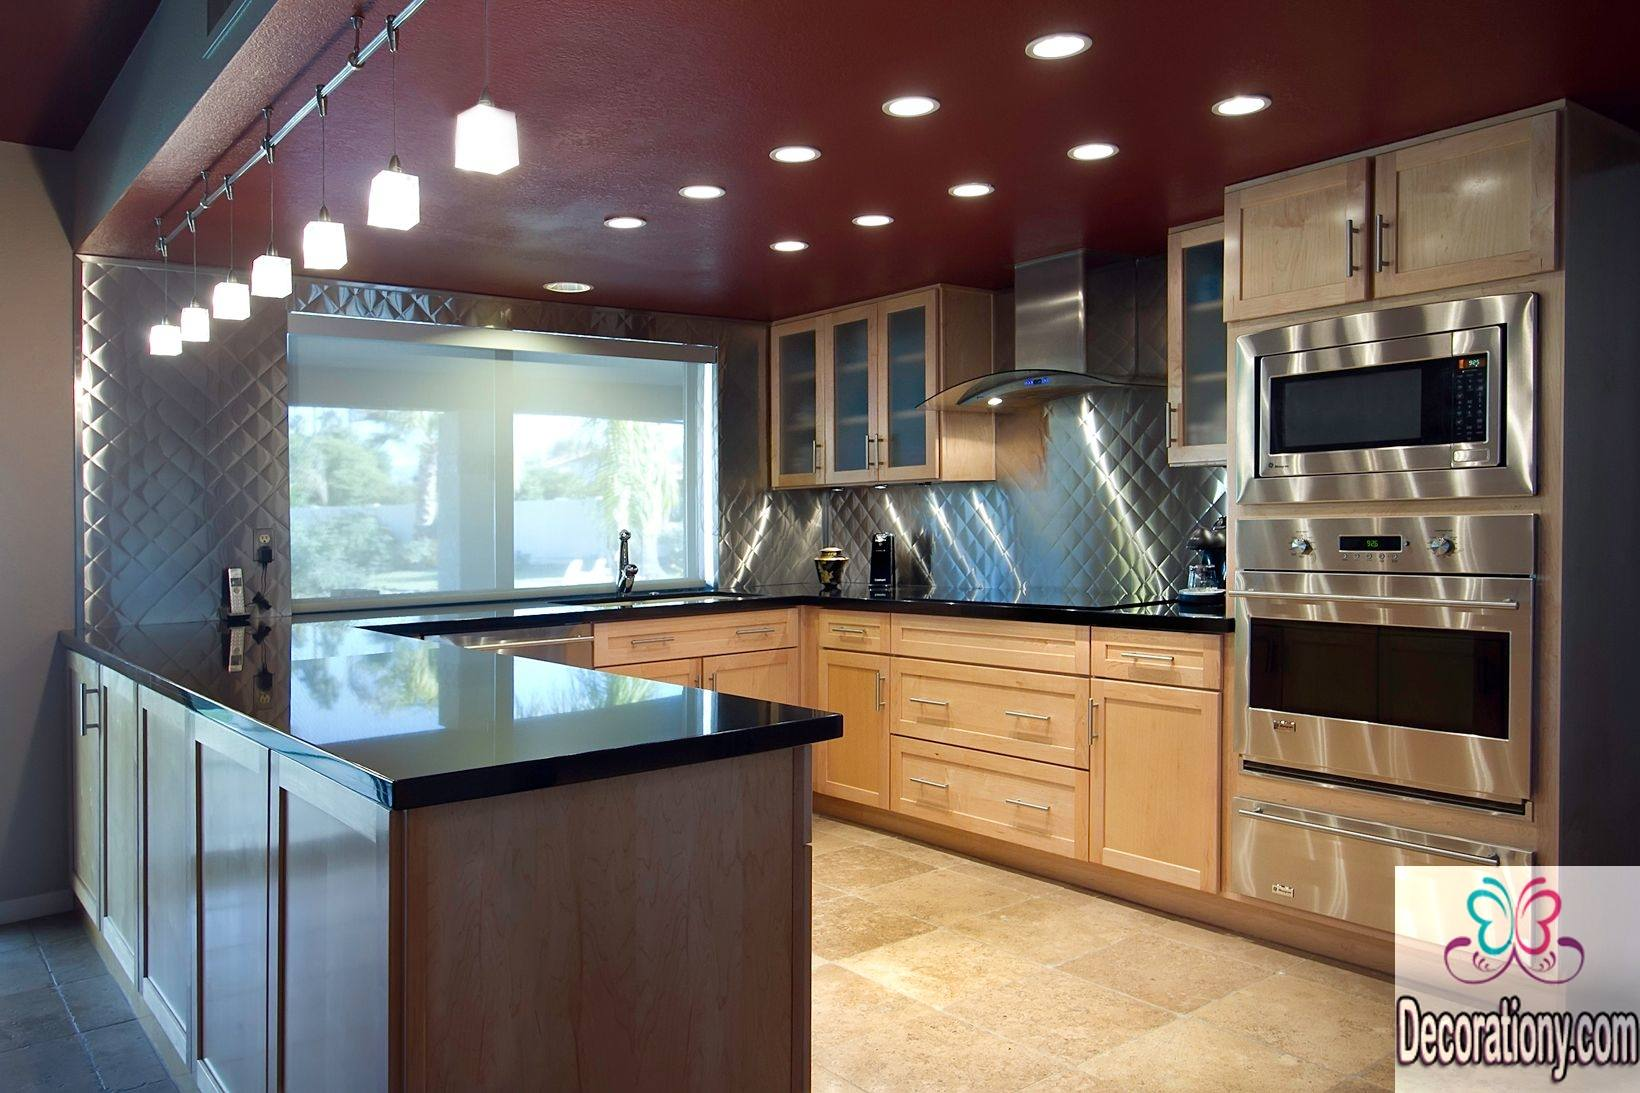 kitchen remodeling ideas & tips